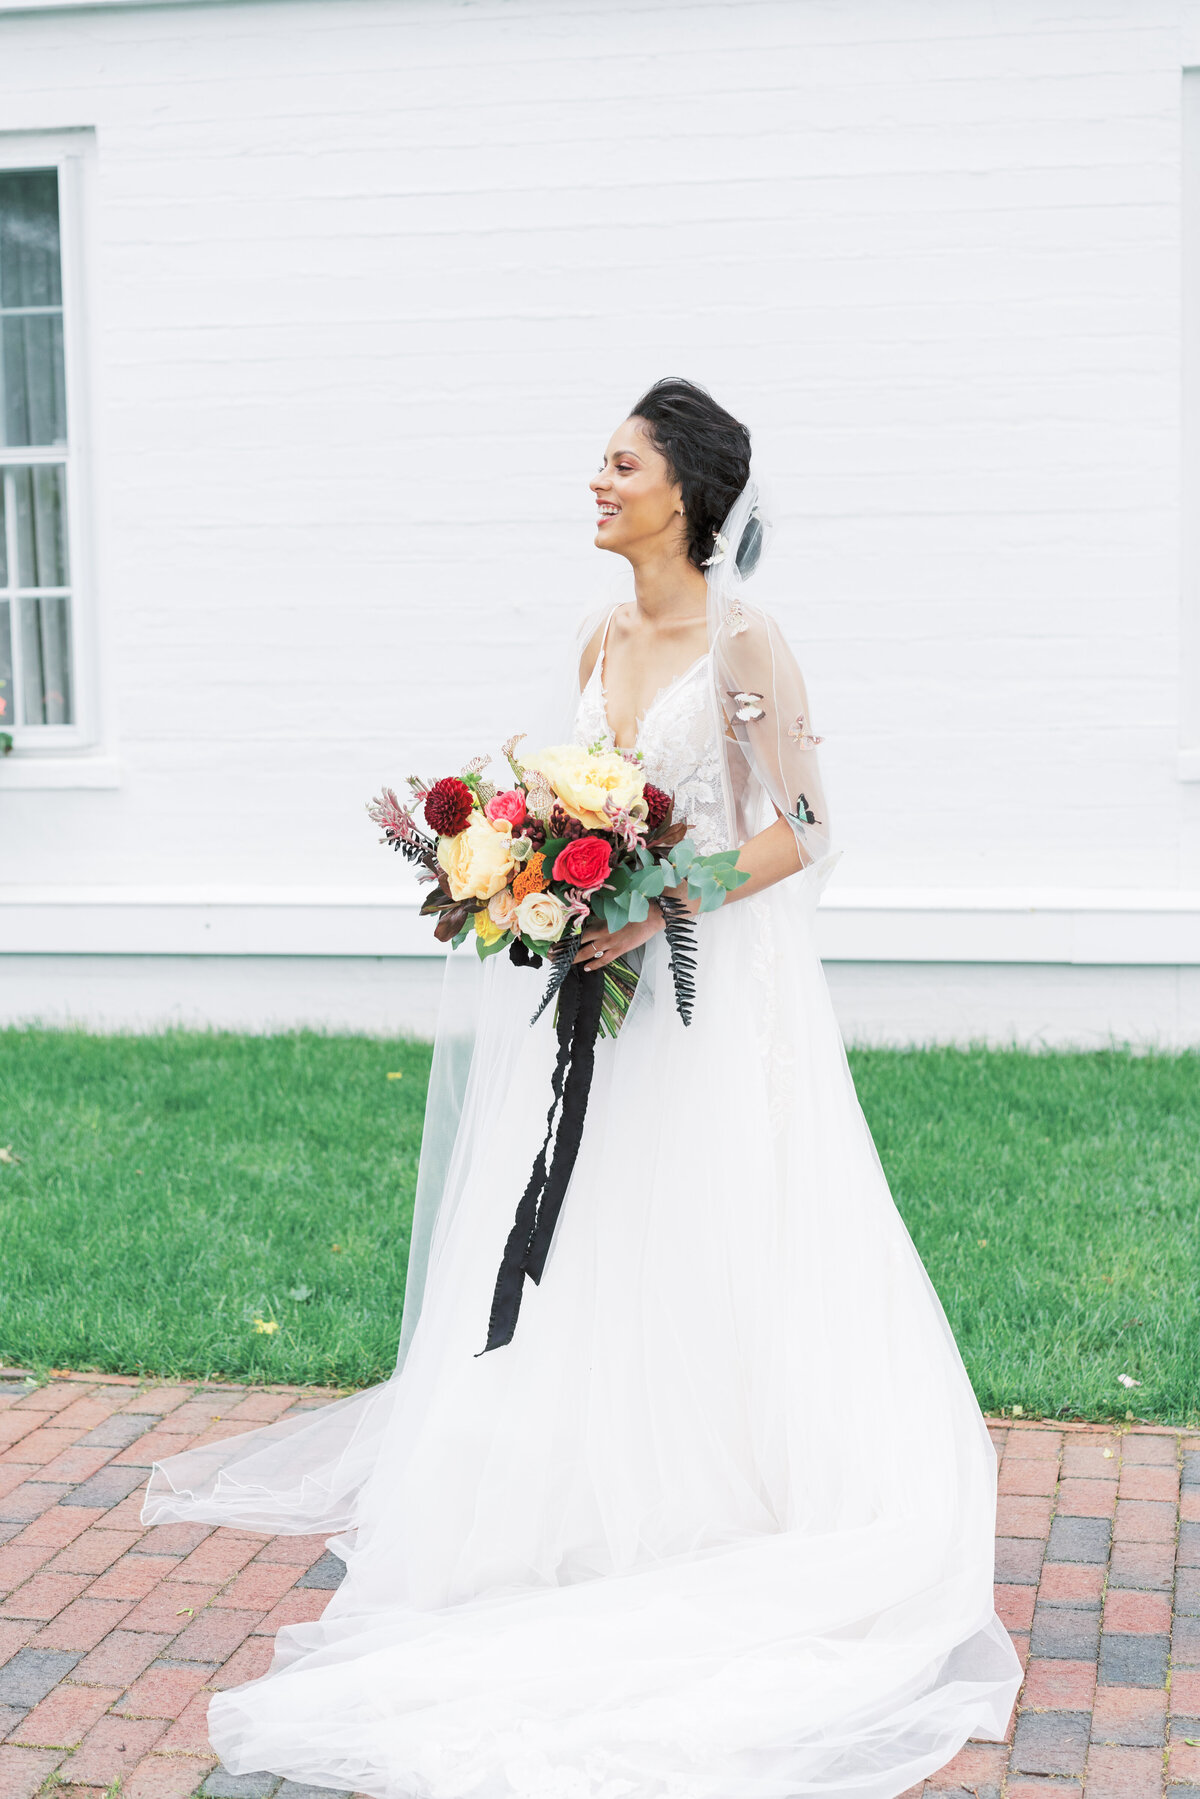 Marcela_Plosker_Photography_Boston_Wedding_Photographer-70